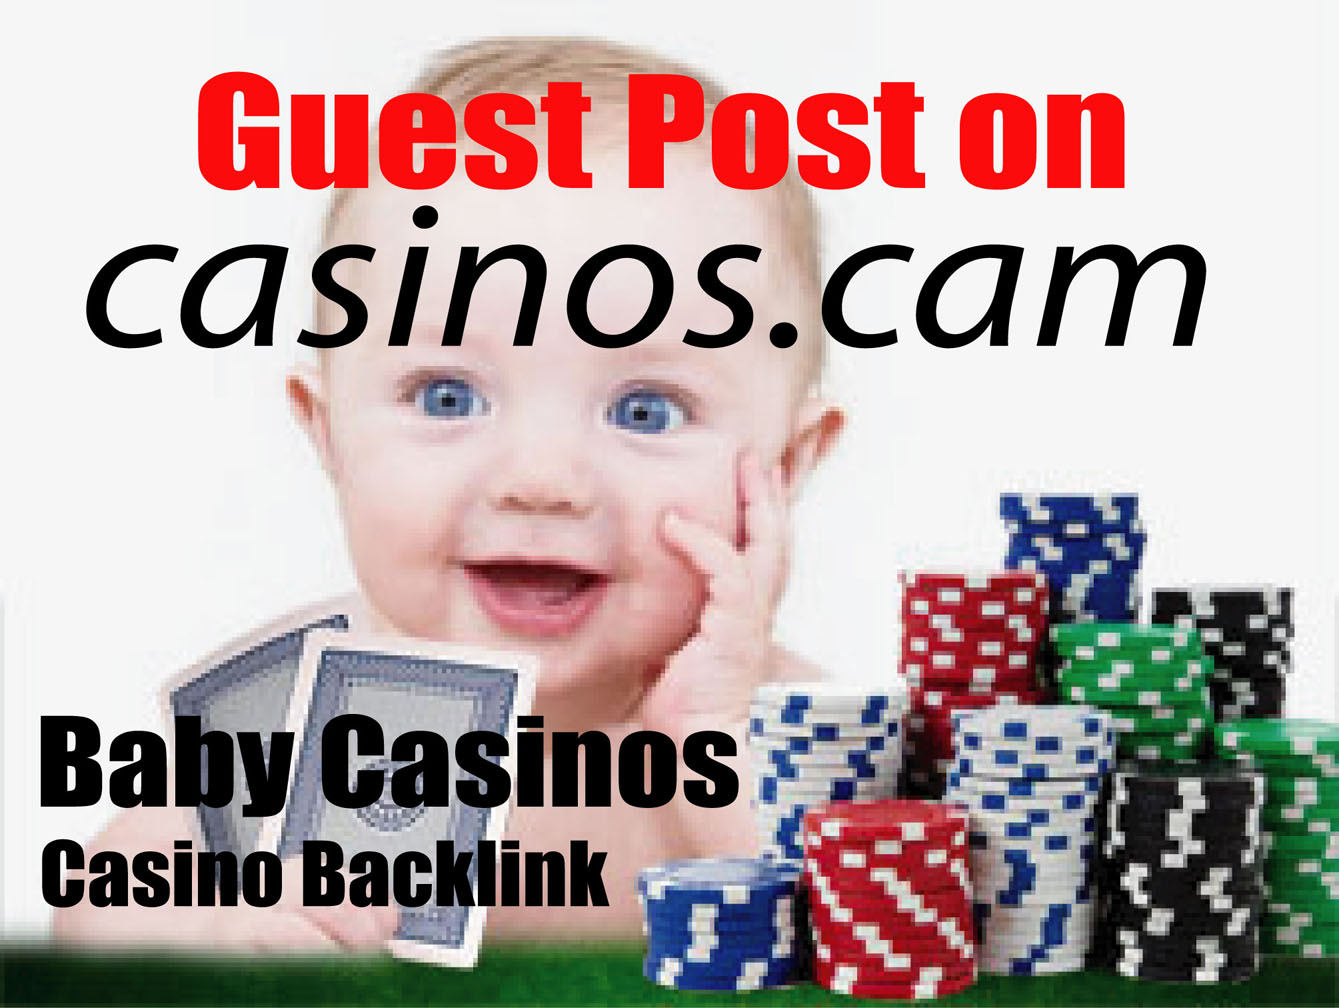 Baby casinos Service- DR 22 Casino Related Guest Post on my Private Blogs